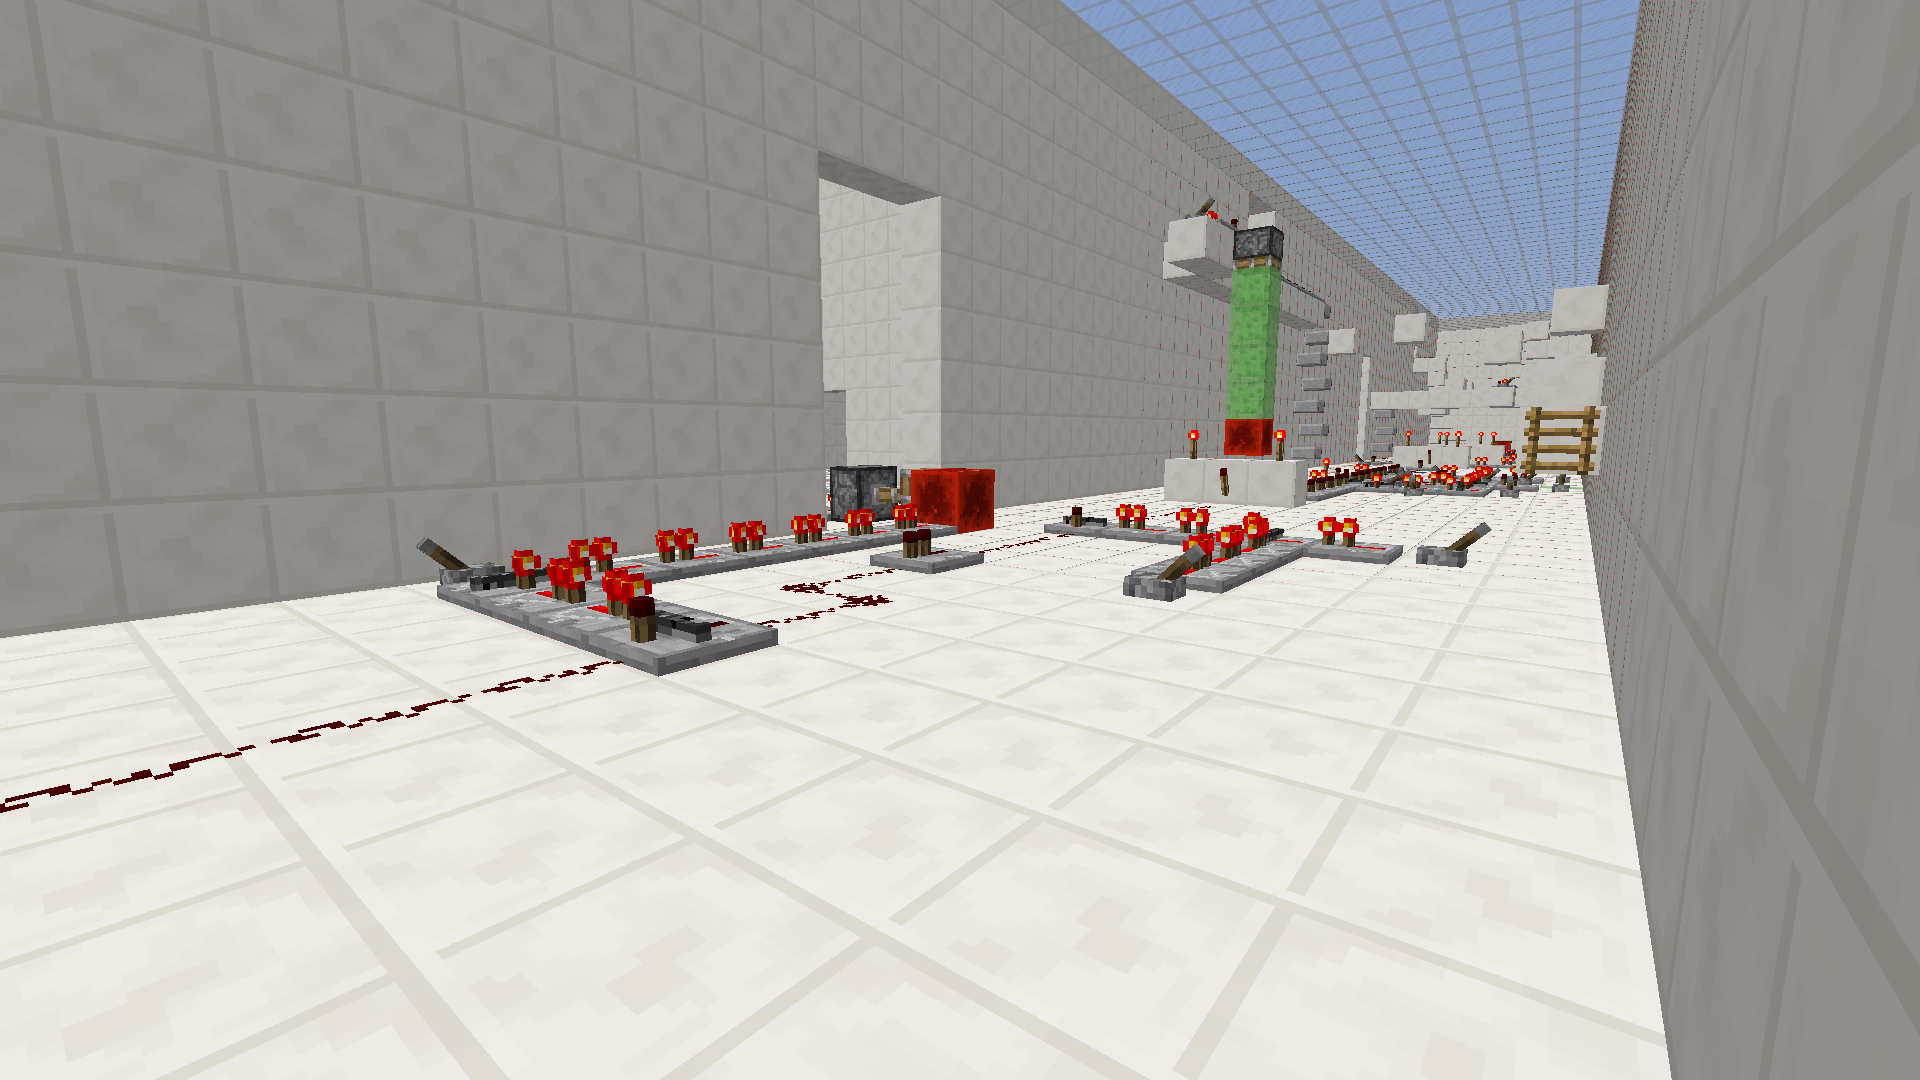 The-redstone-predicament-2-map-1